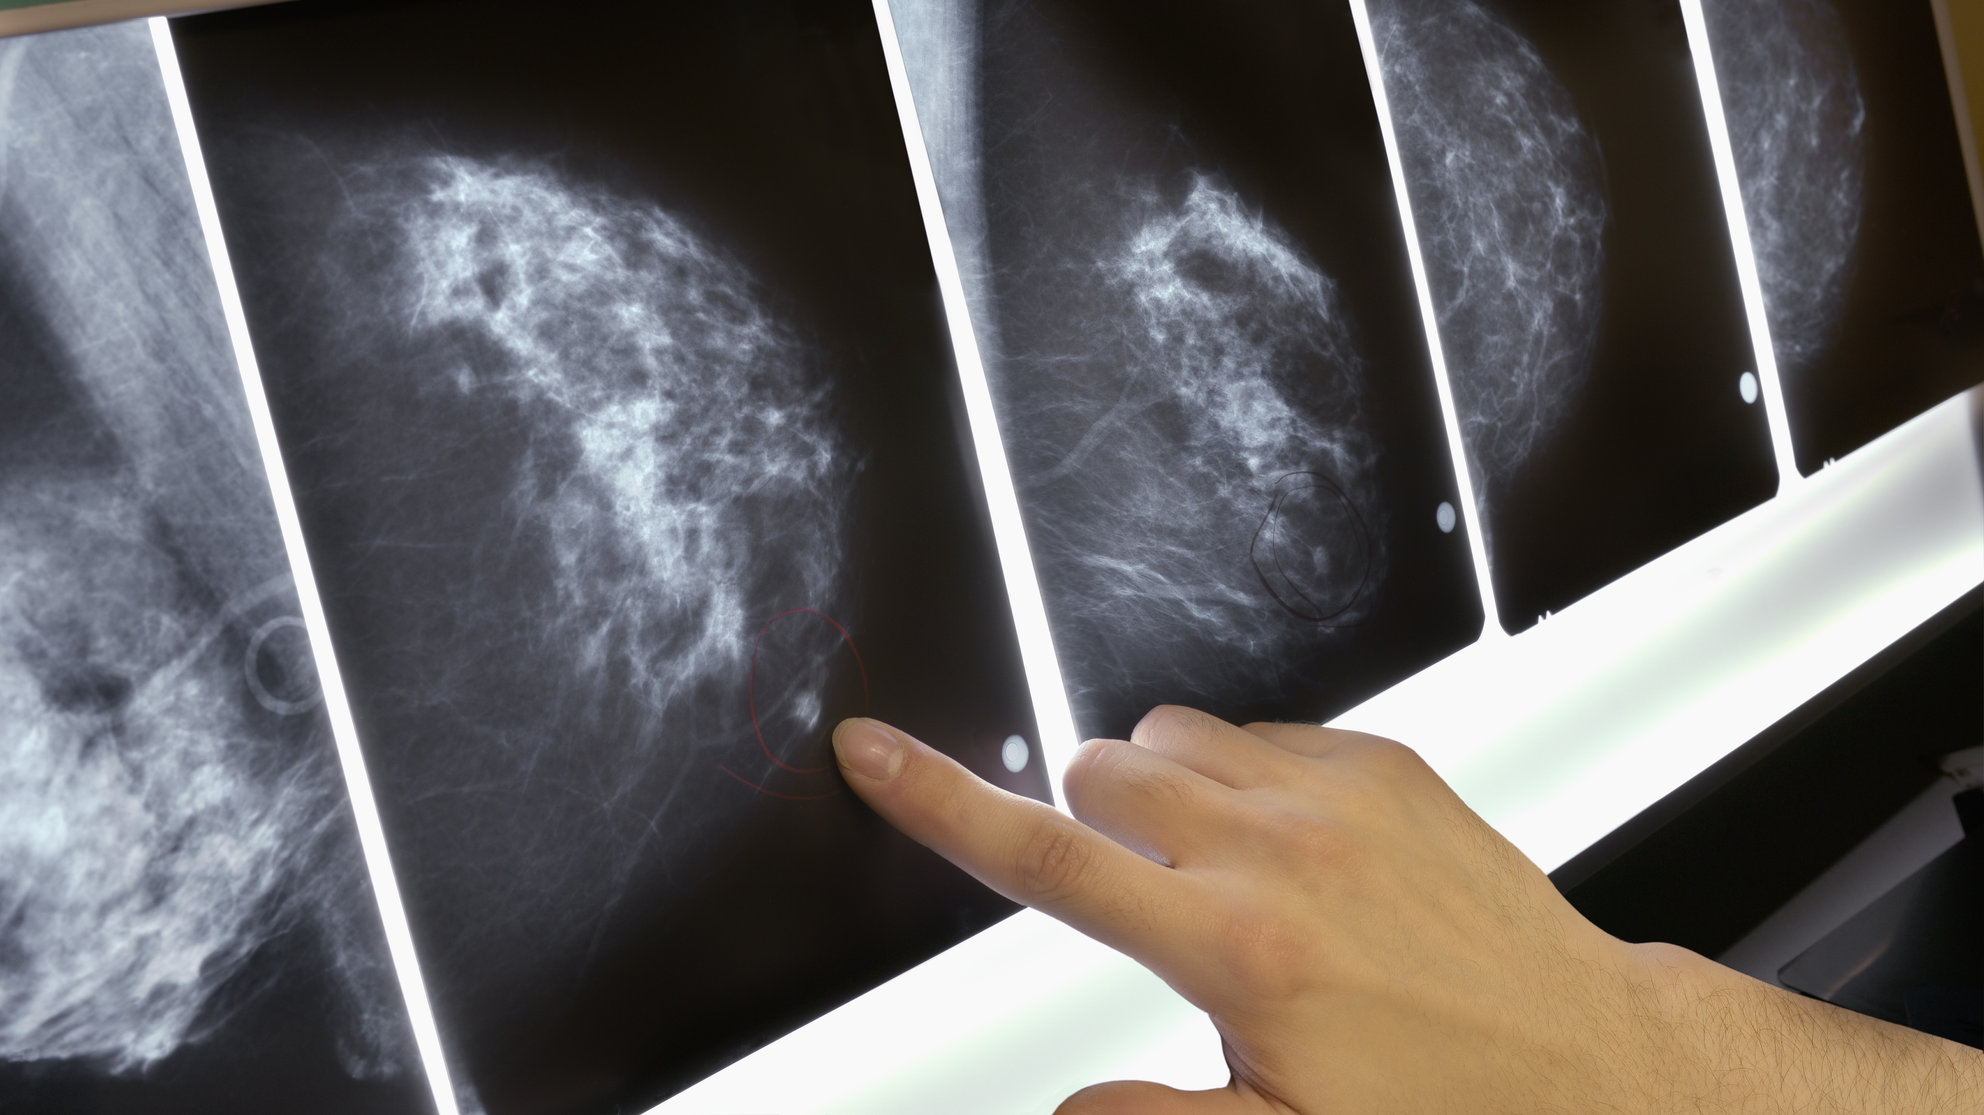 What To Expect If Youre Having A Mammogram - Health-7964